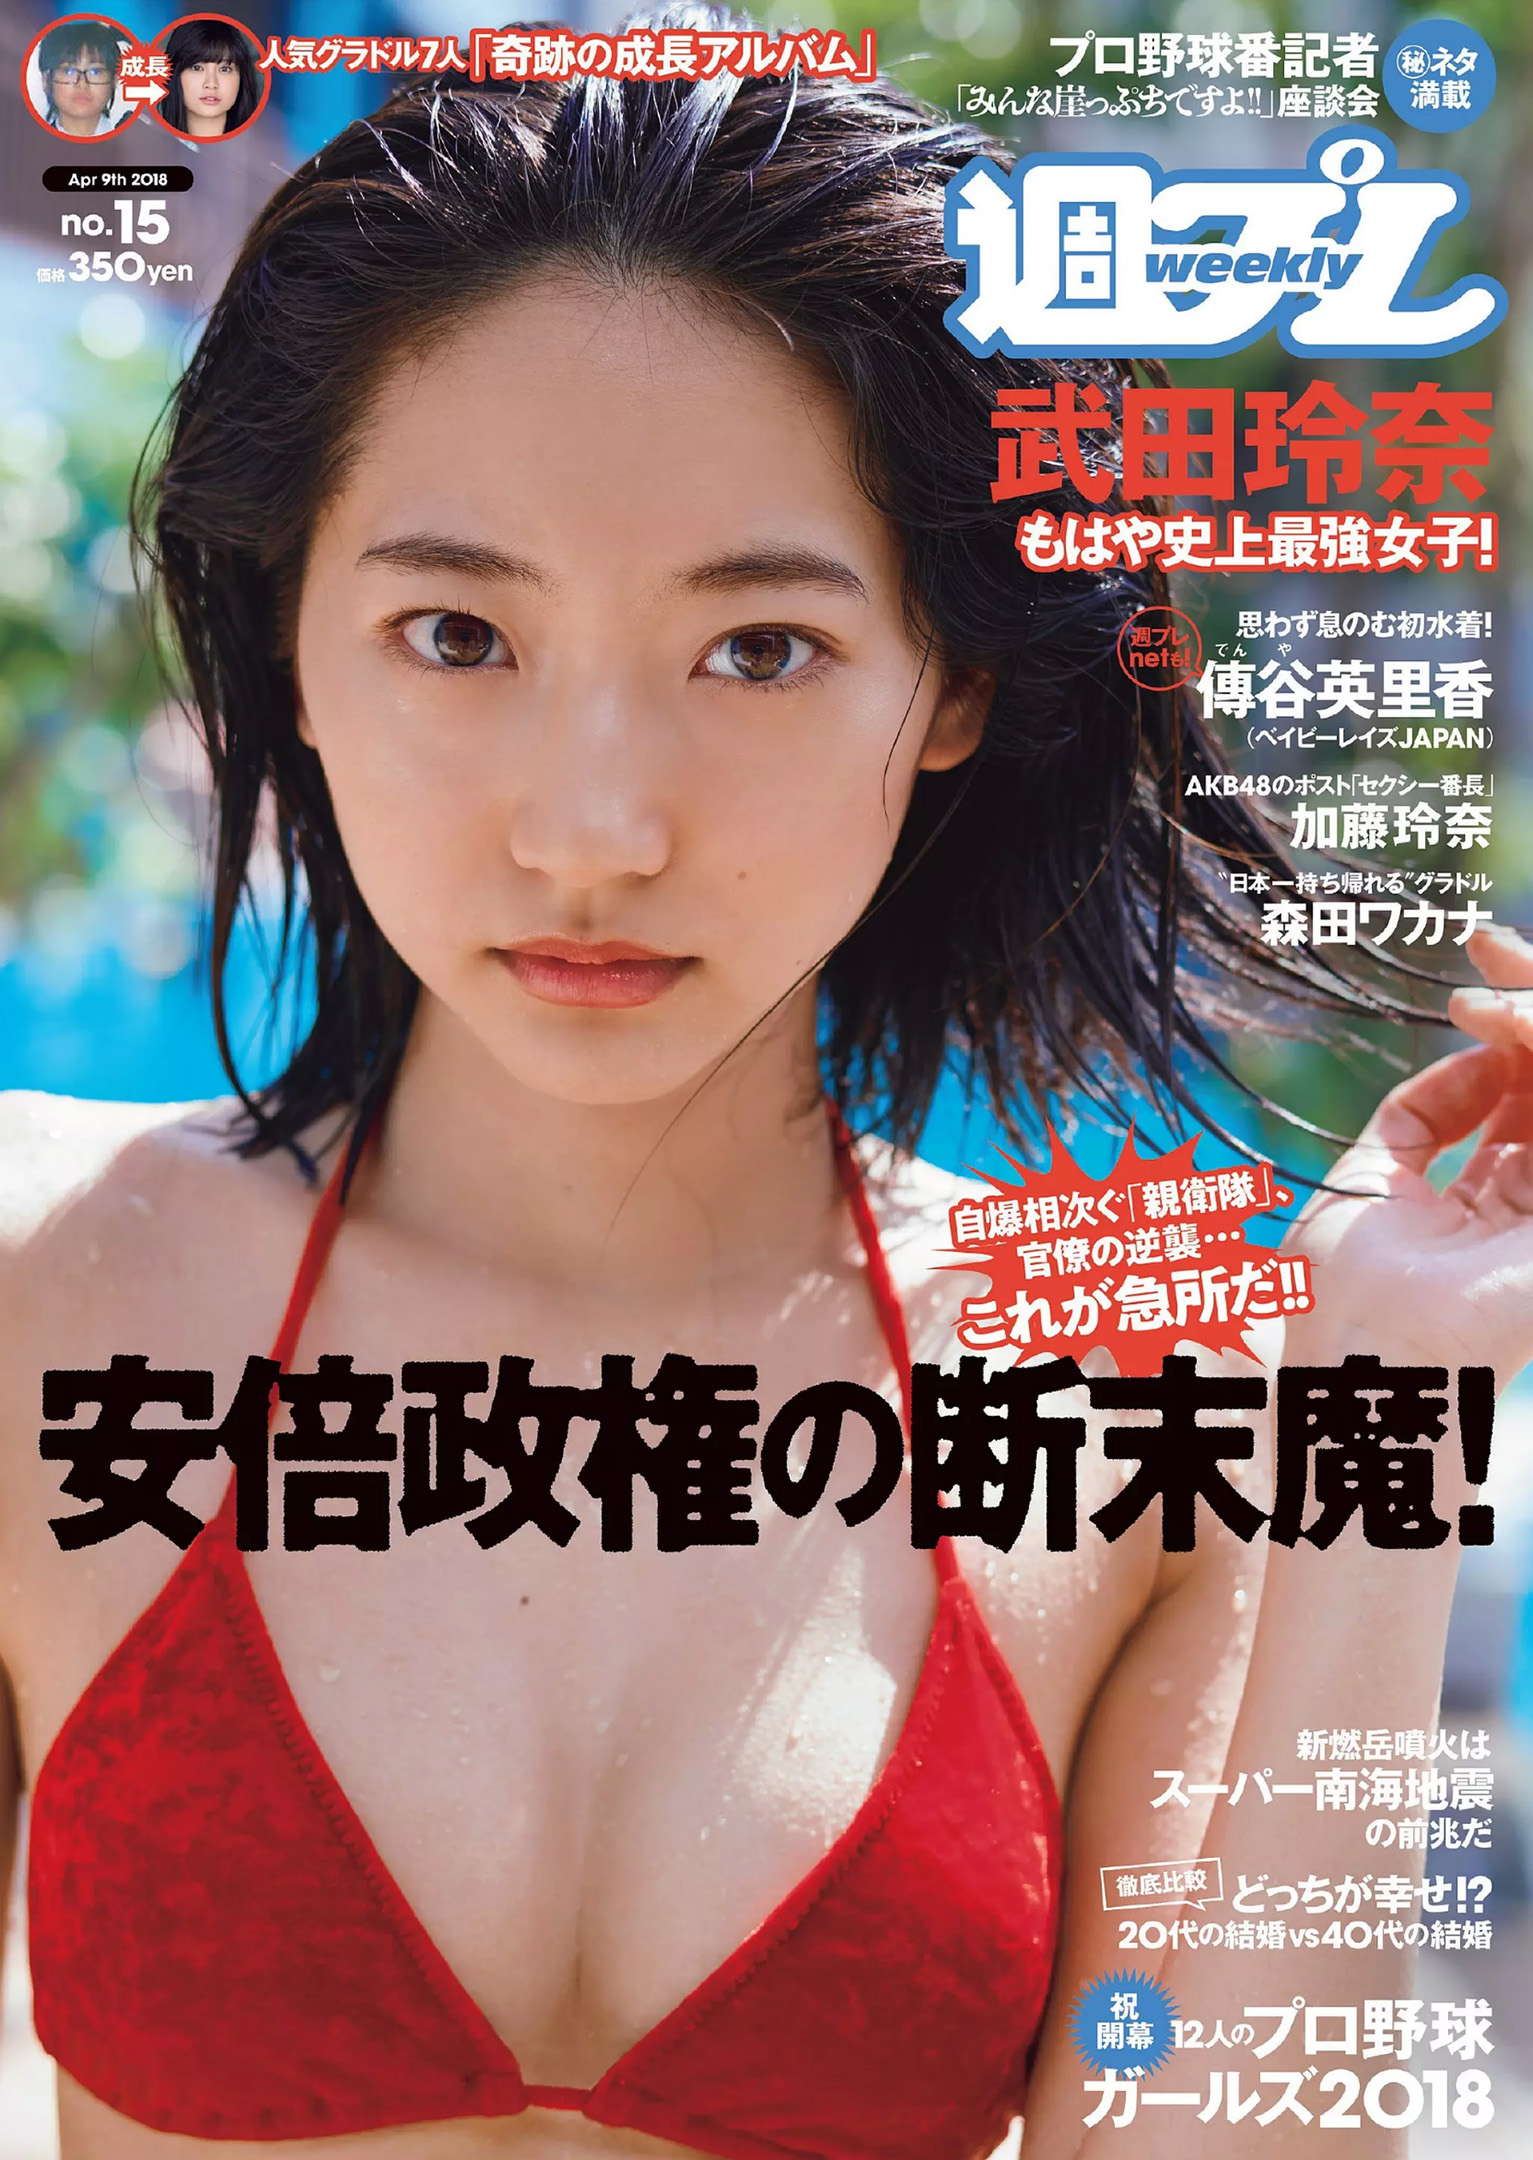 20180716.0114.13 Weekly Playboy (2018.15) 01 (JPOP.ru).jpg